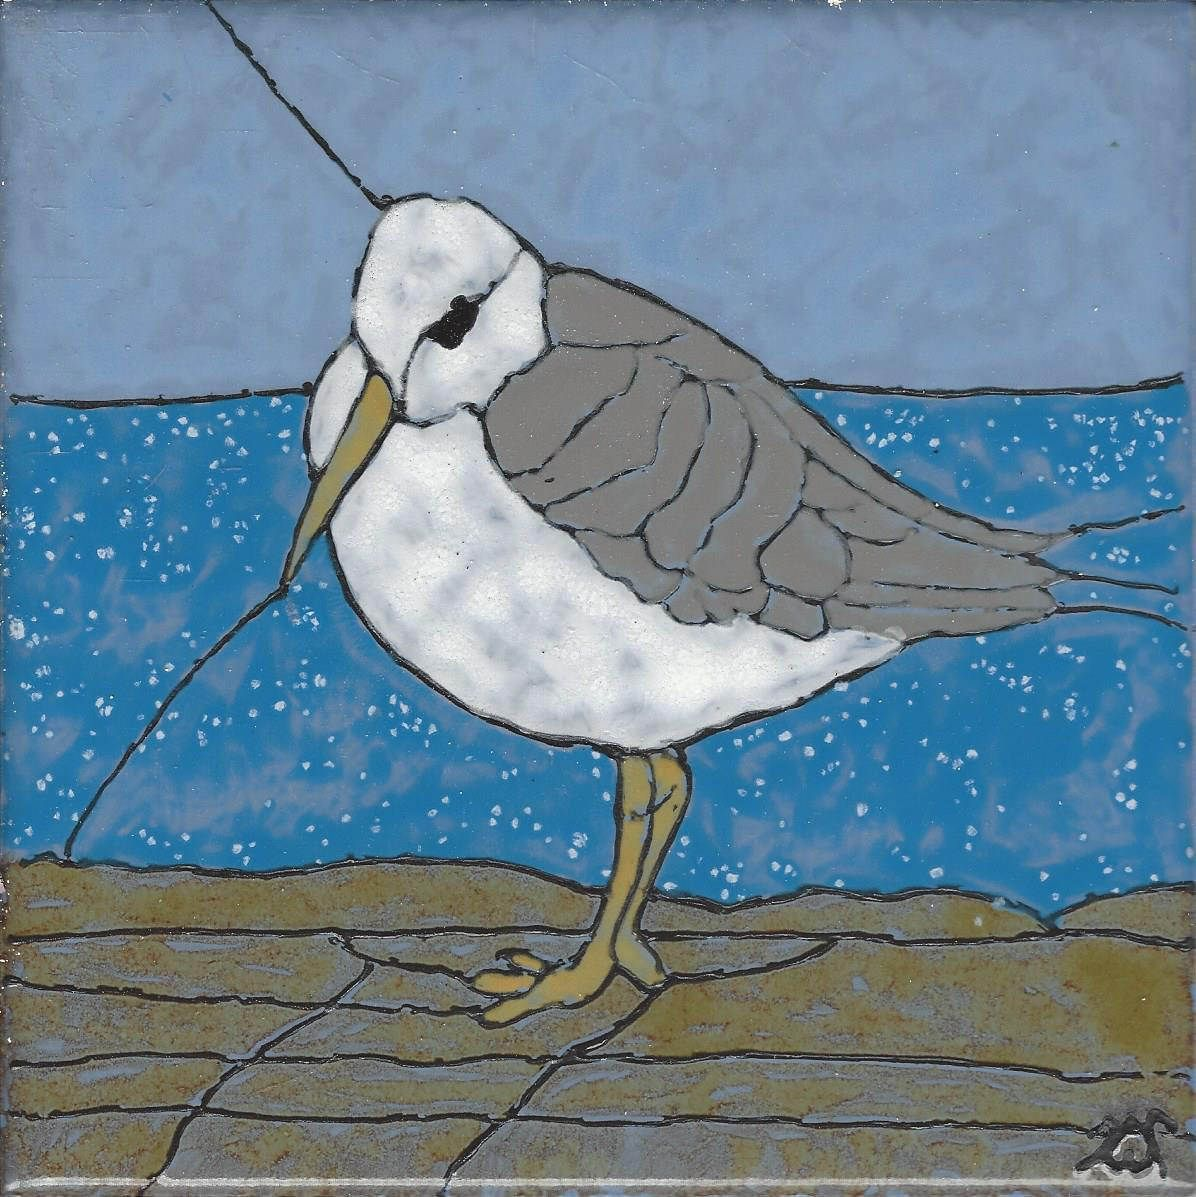 Hand Painted Decorative Ceramic Picture Tiles Amazing Sea Gull 205 Hand Painted Kiln Fired Decorative Ceramic Wall Art Decorating Inspiration